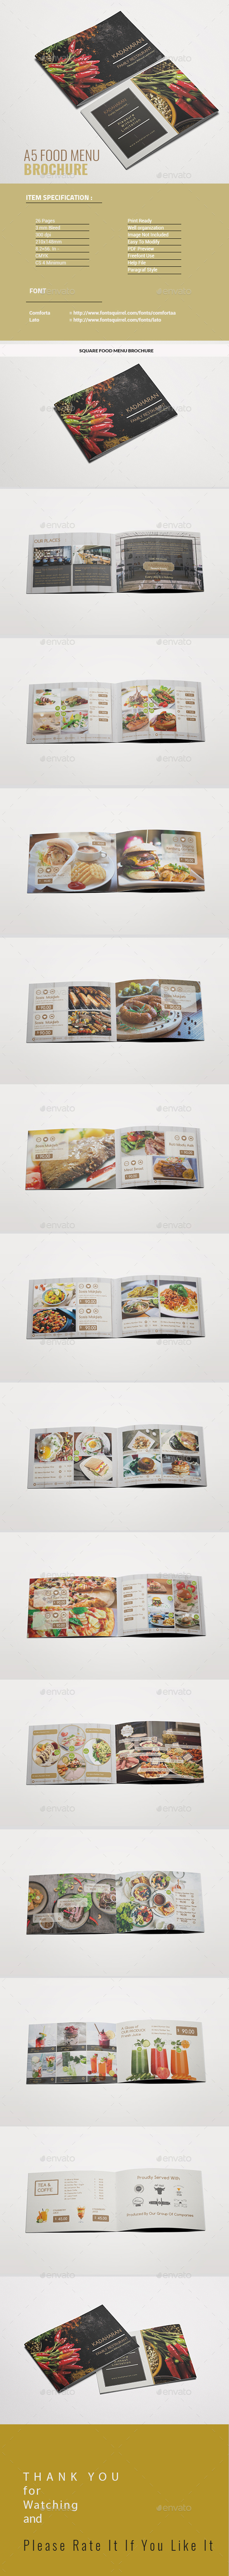 A5 Food Menu Brochure - Food Menus Print Templates